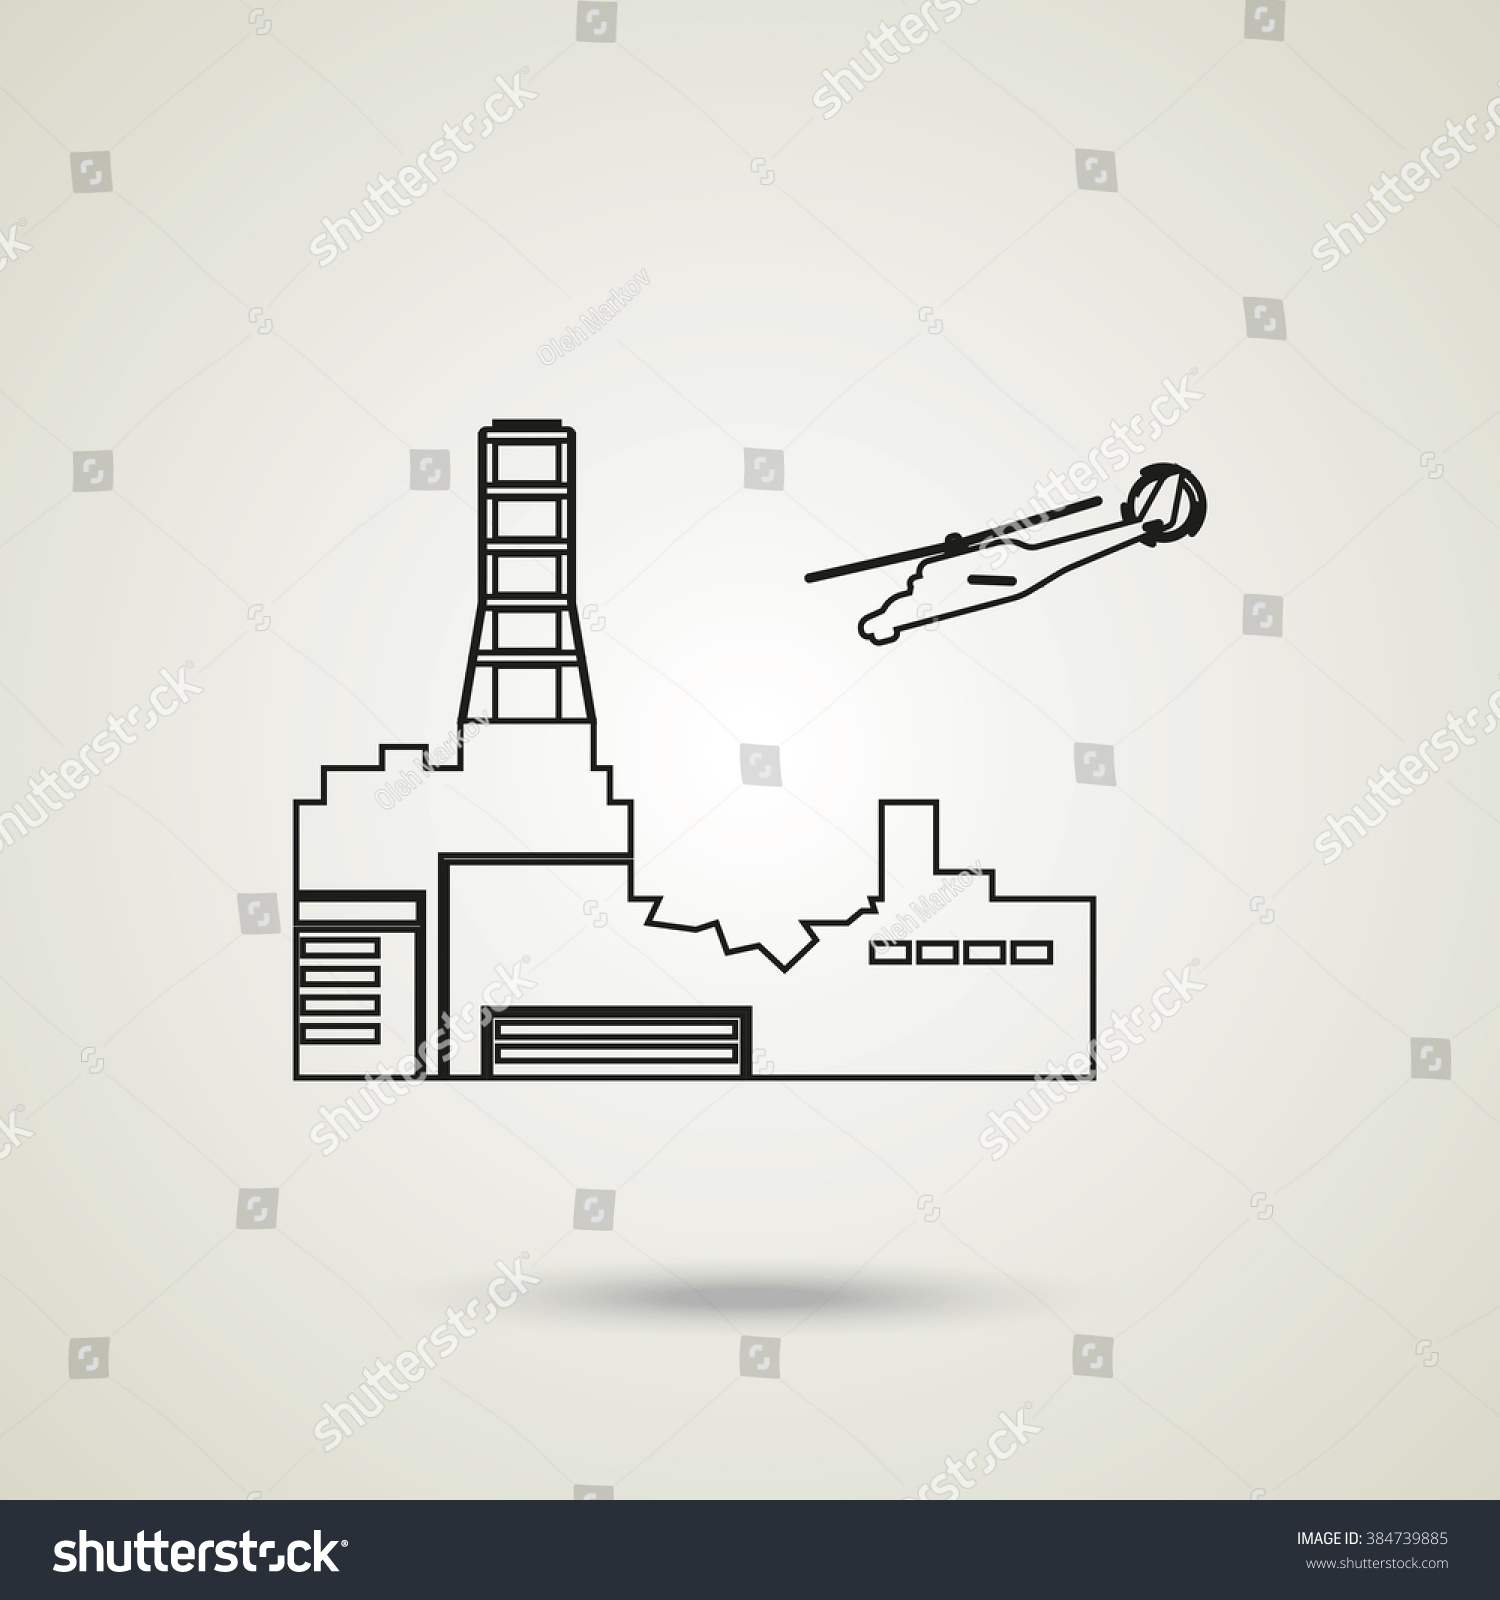 Chernobyl nuclear power station stock illustration 384739885 chernobyl nuclear power station ccuart Images